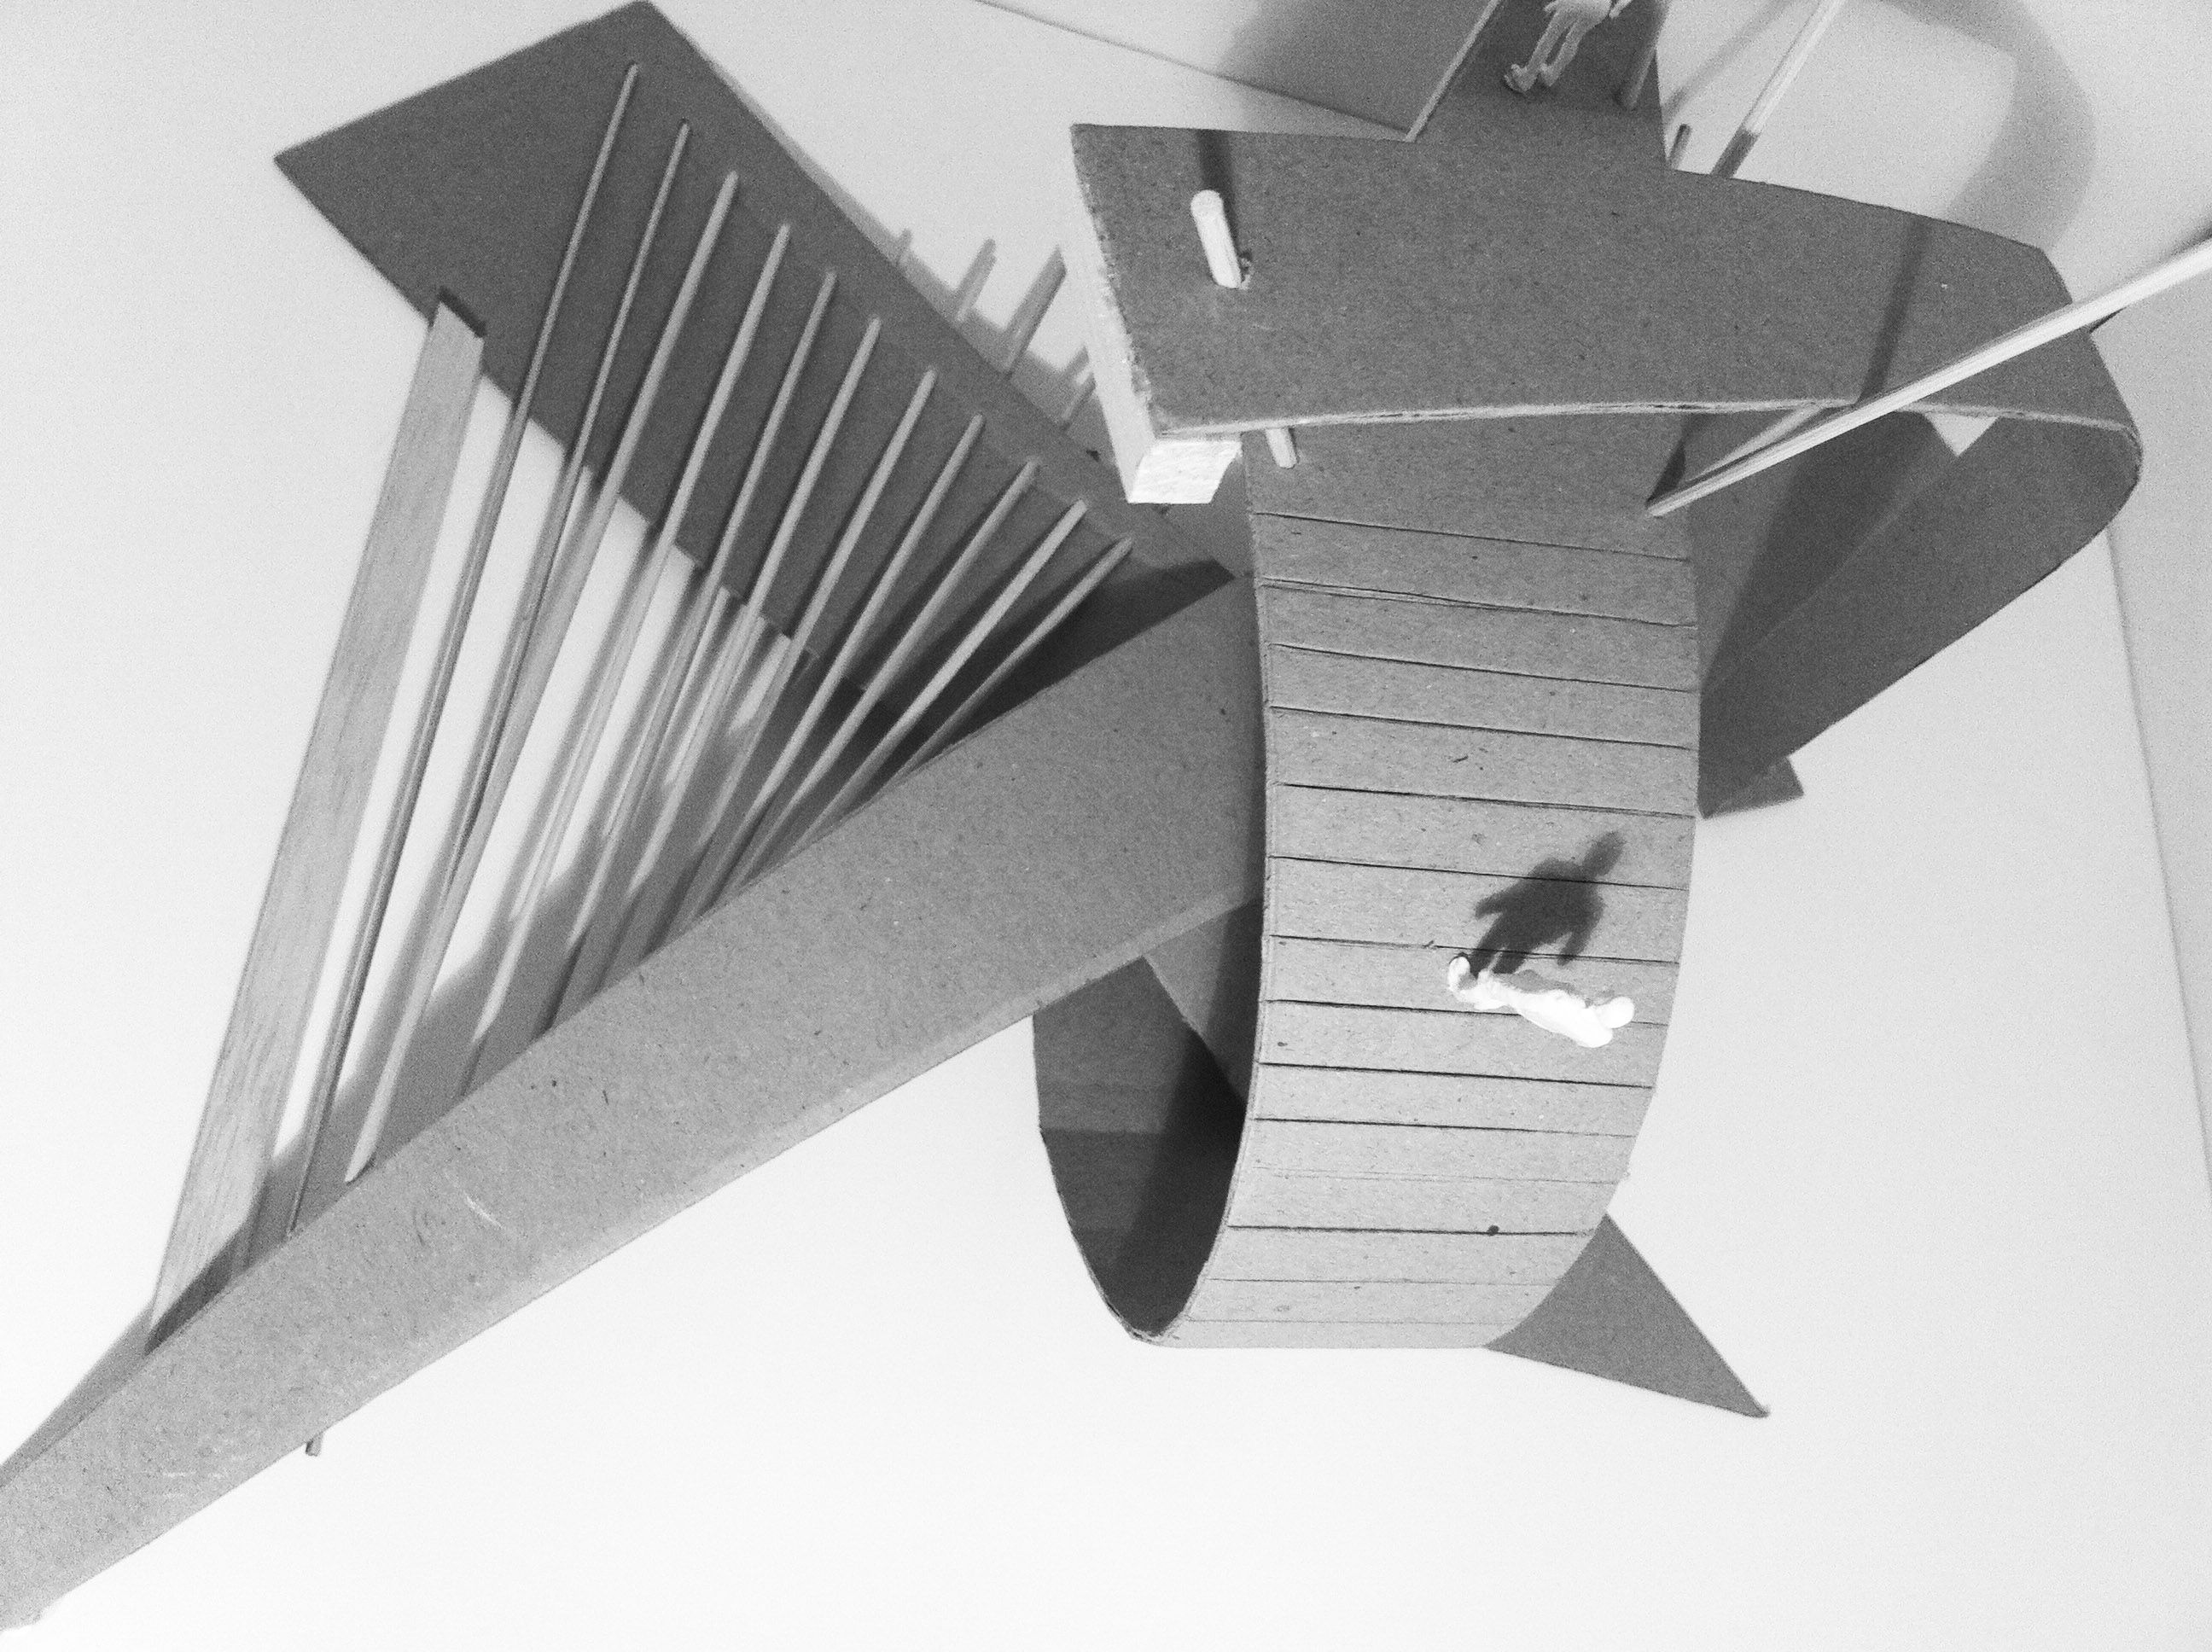 Architecture Design Models 3d abstract structure - google search | 3s absract | pinterest